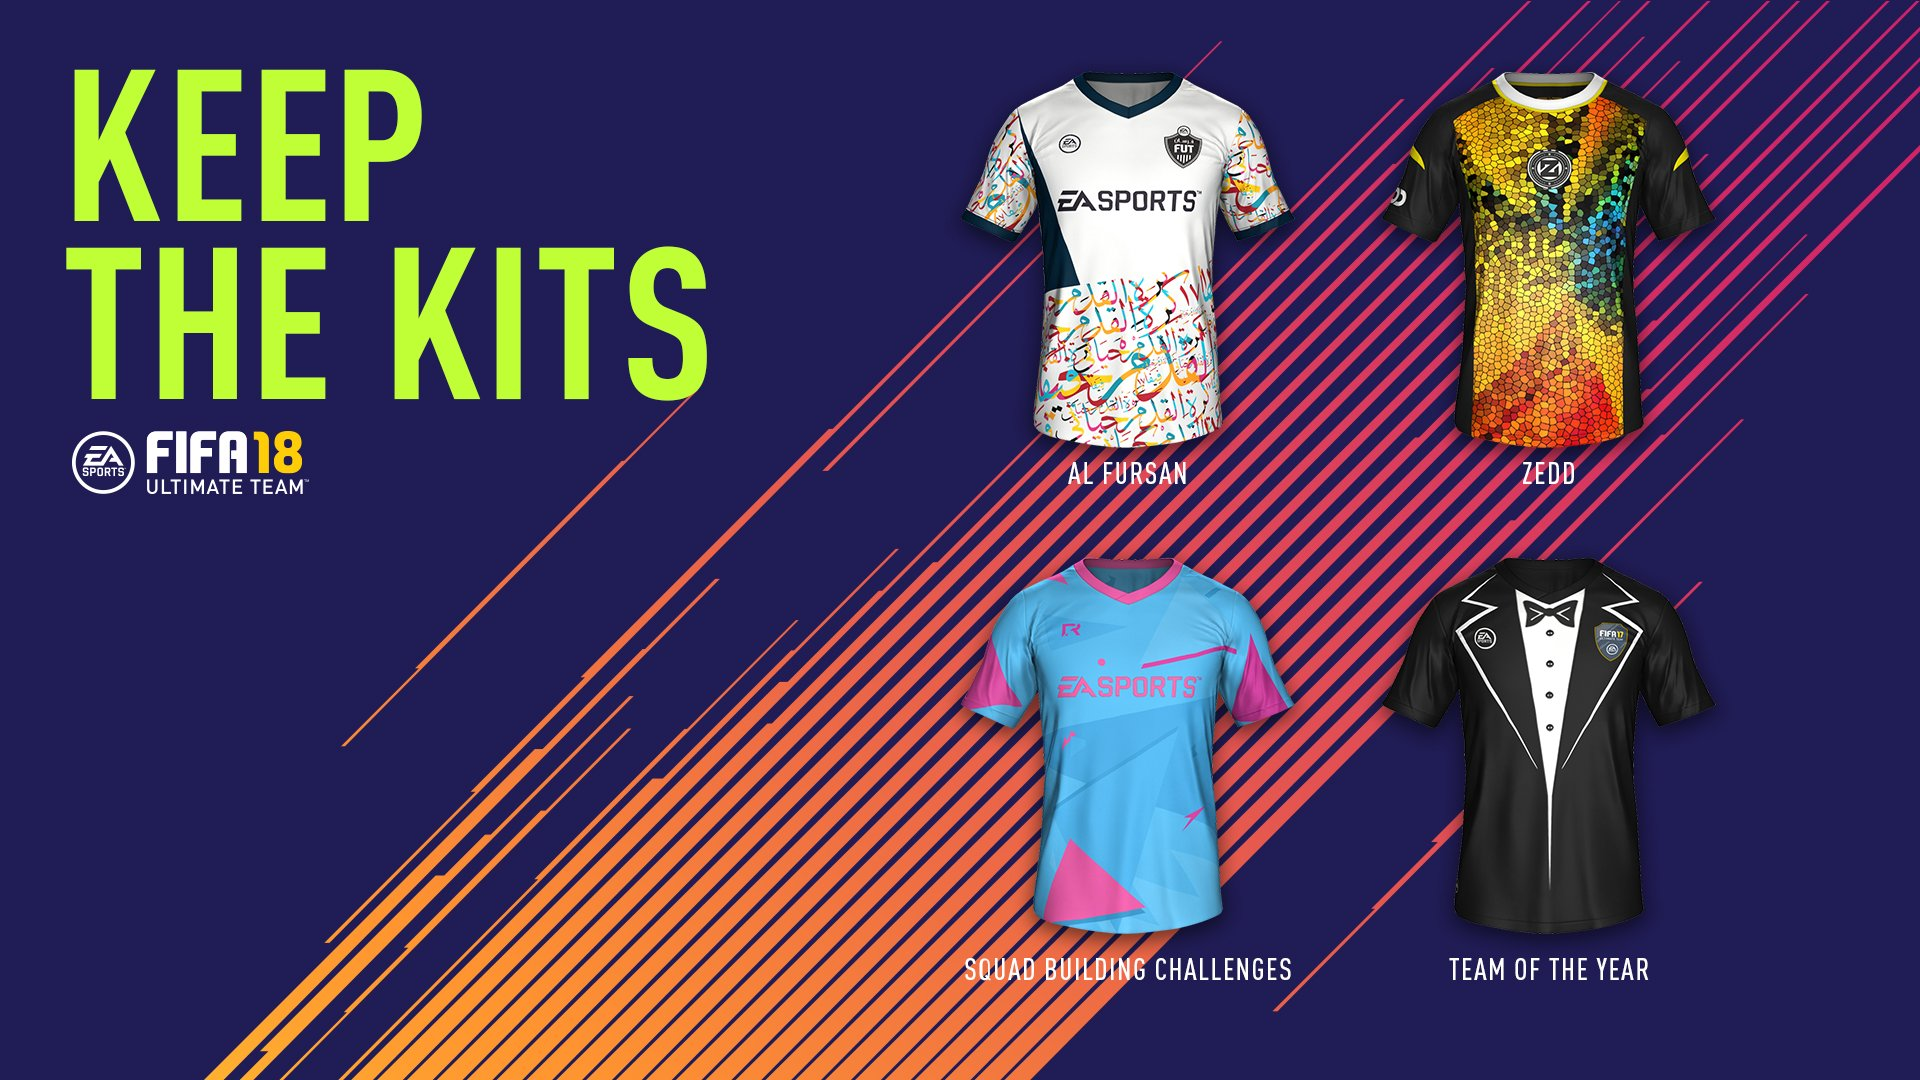 play 5 days of fifa 17 by 4 september and get kits in fifa 18